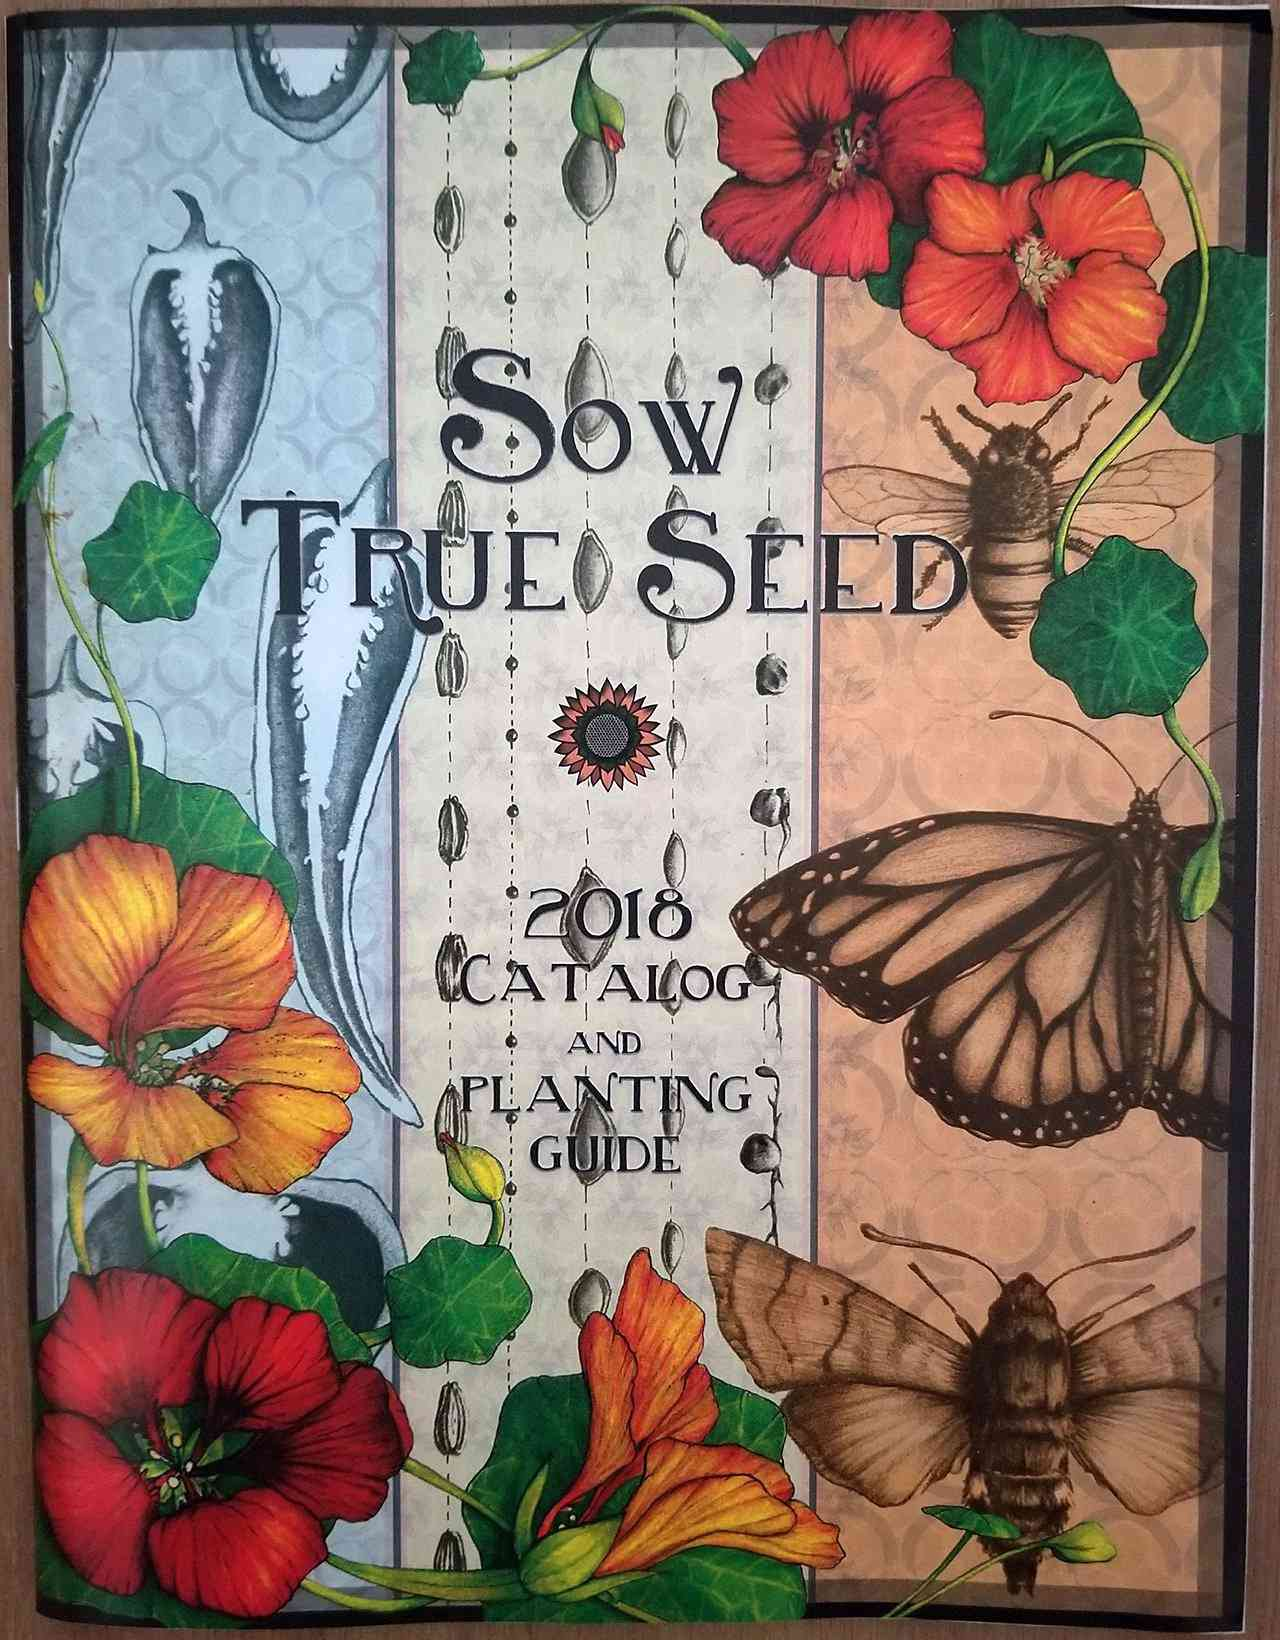 The 2018 Sow True Seed catalog and planting guide